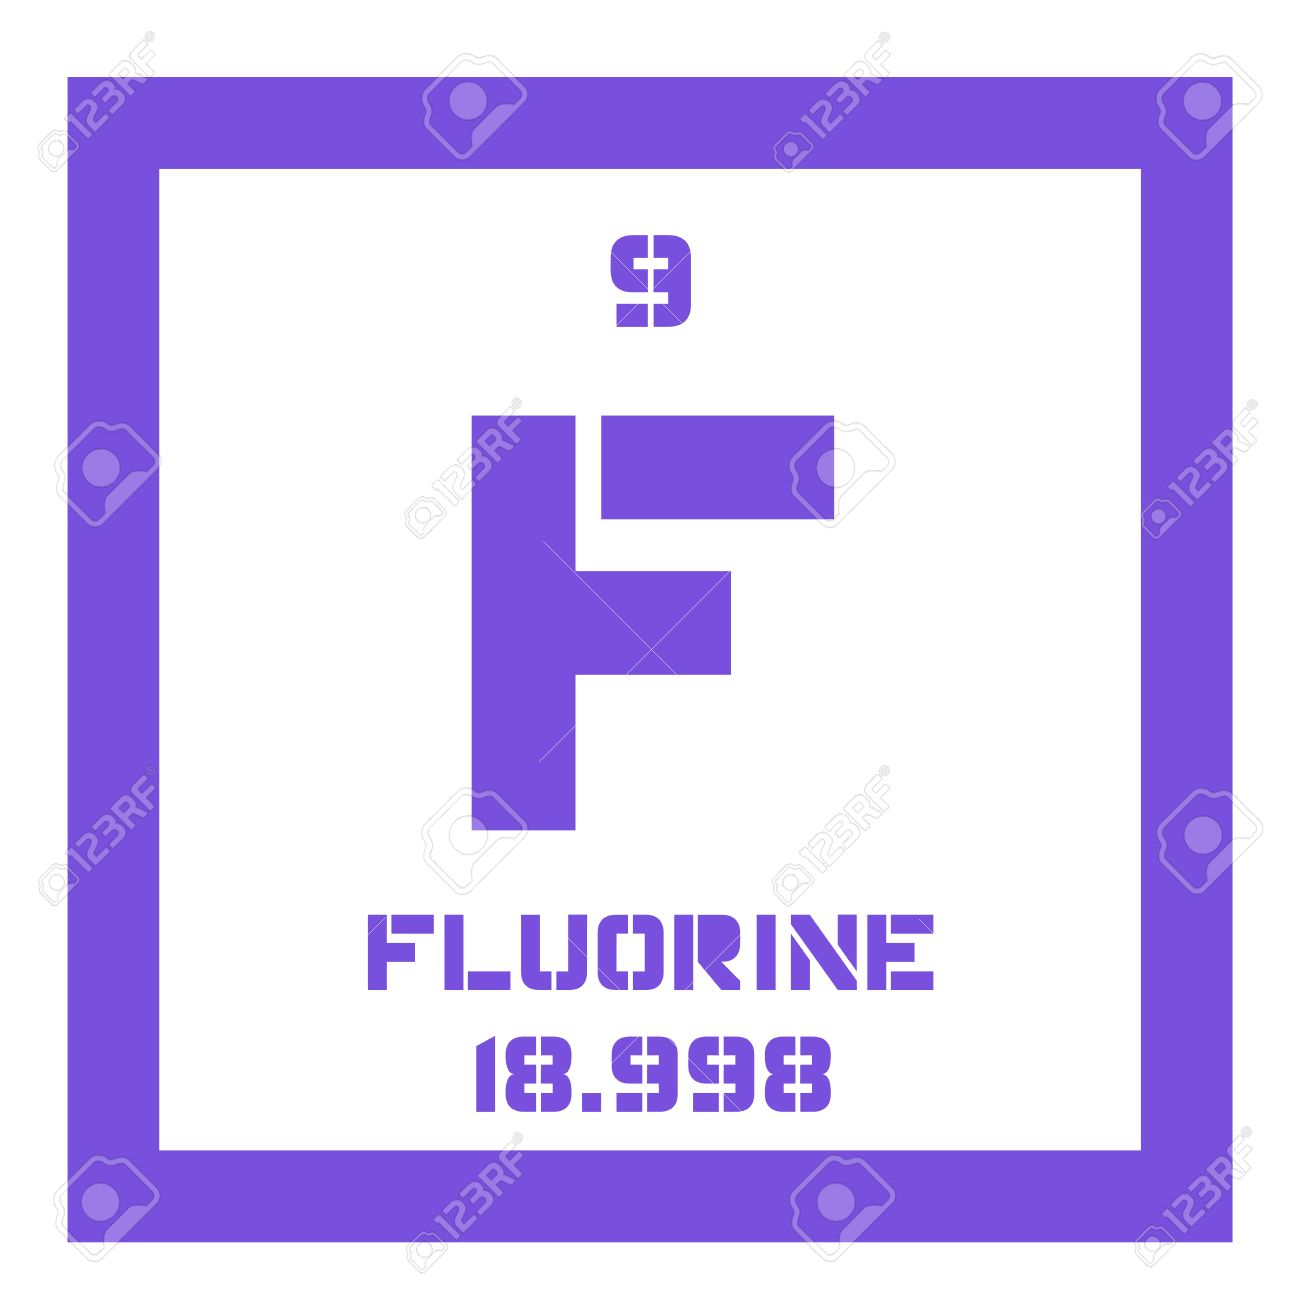 Fluorine chemical element the most electronegative element fluorine chemical element the most electronegative element colored icon with atomic number and atomic gamestrikefo Gallery